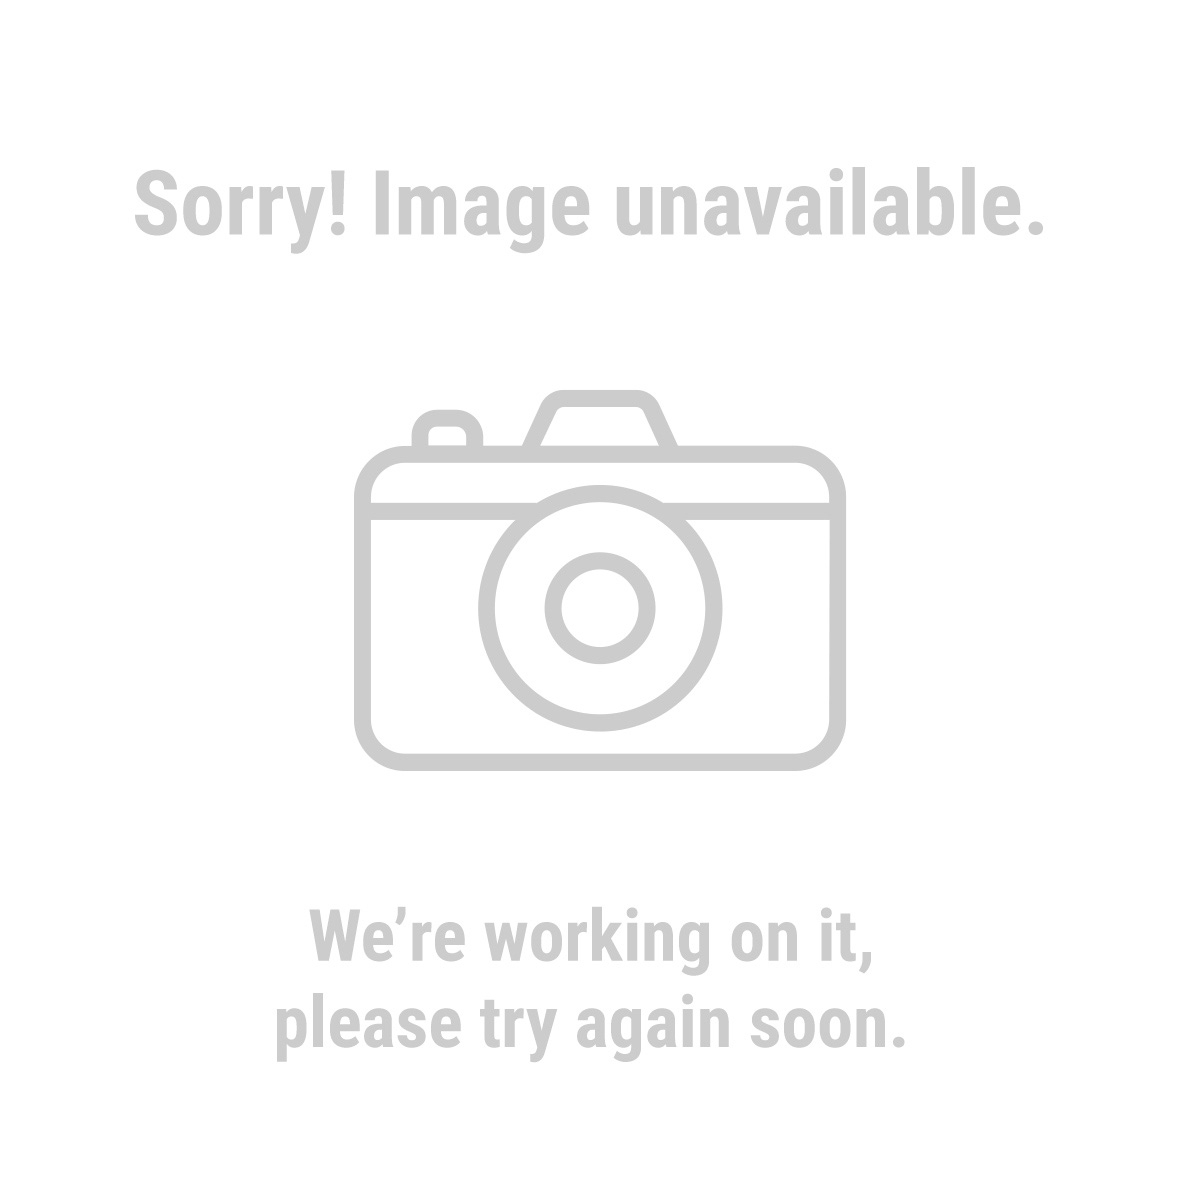 Three Jaw Puller Harbor Freight : Bearing puller harbor freight bing images